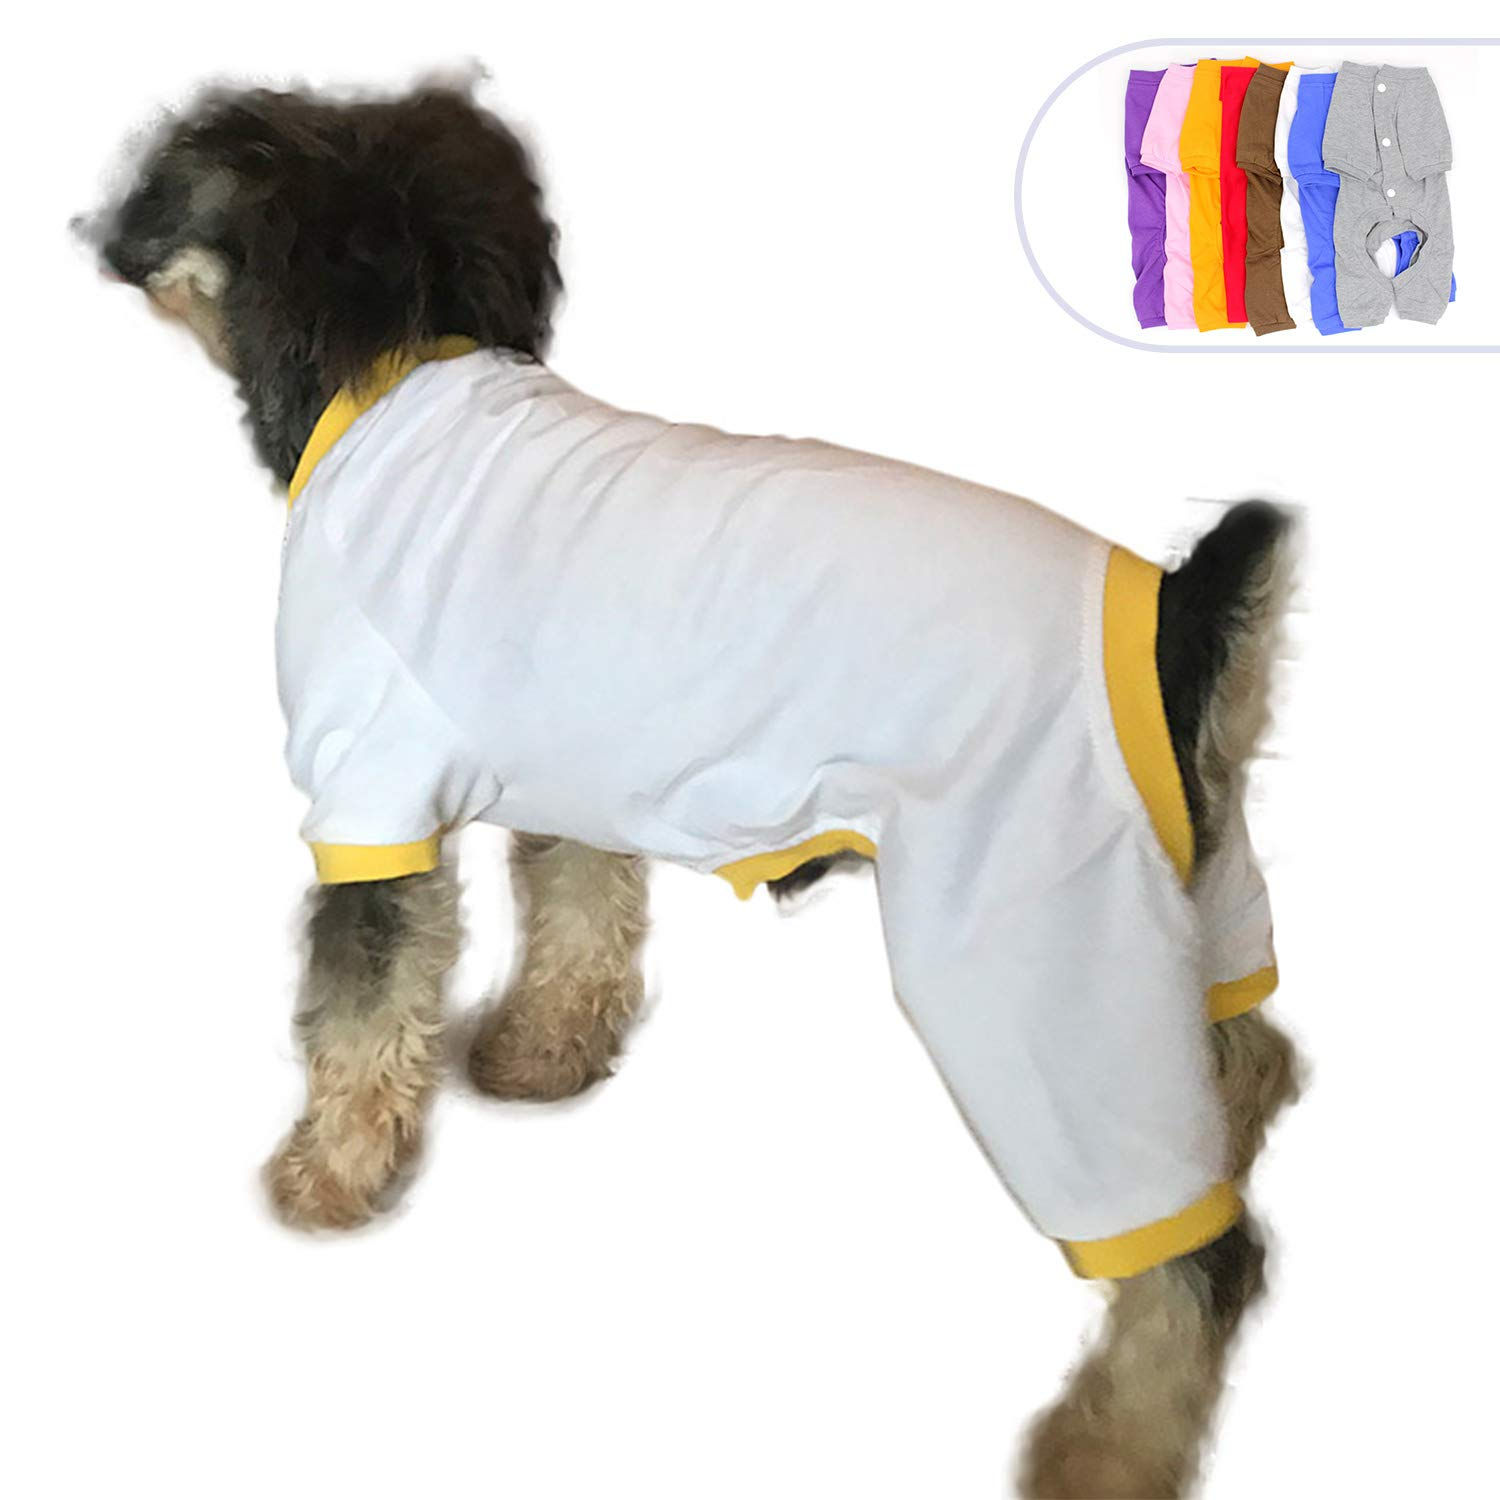 Bianco -giallo XS (piccolo cane) Bianco -giallo XS (piccolo cane)  lolonglong Pet Clothes Dog Clothes Pajames T -Shirts Tee Shirt per Small Size Dogs 100% Cotton Dog Four Legs Jump Suit Teddy Jump for  hua DBR -006 (XS, White)